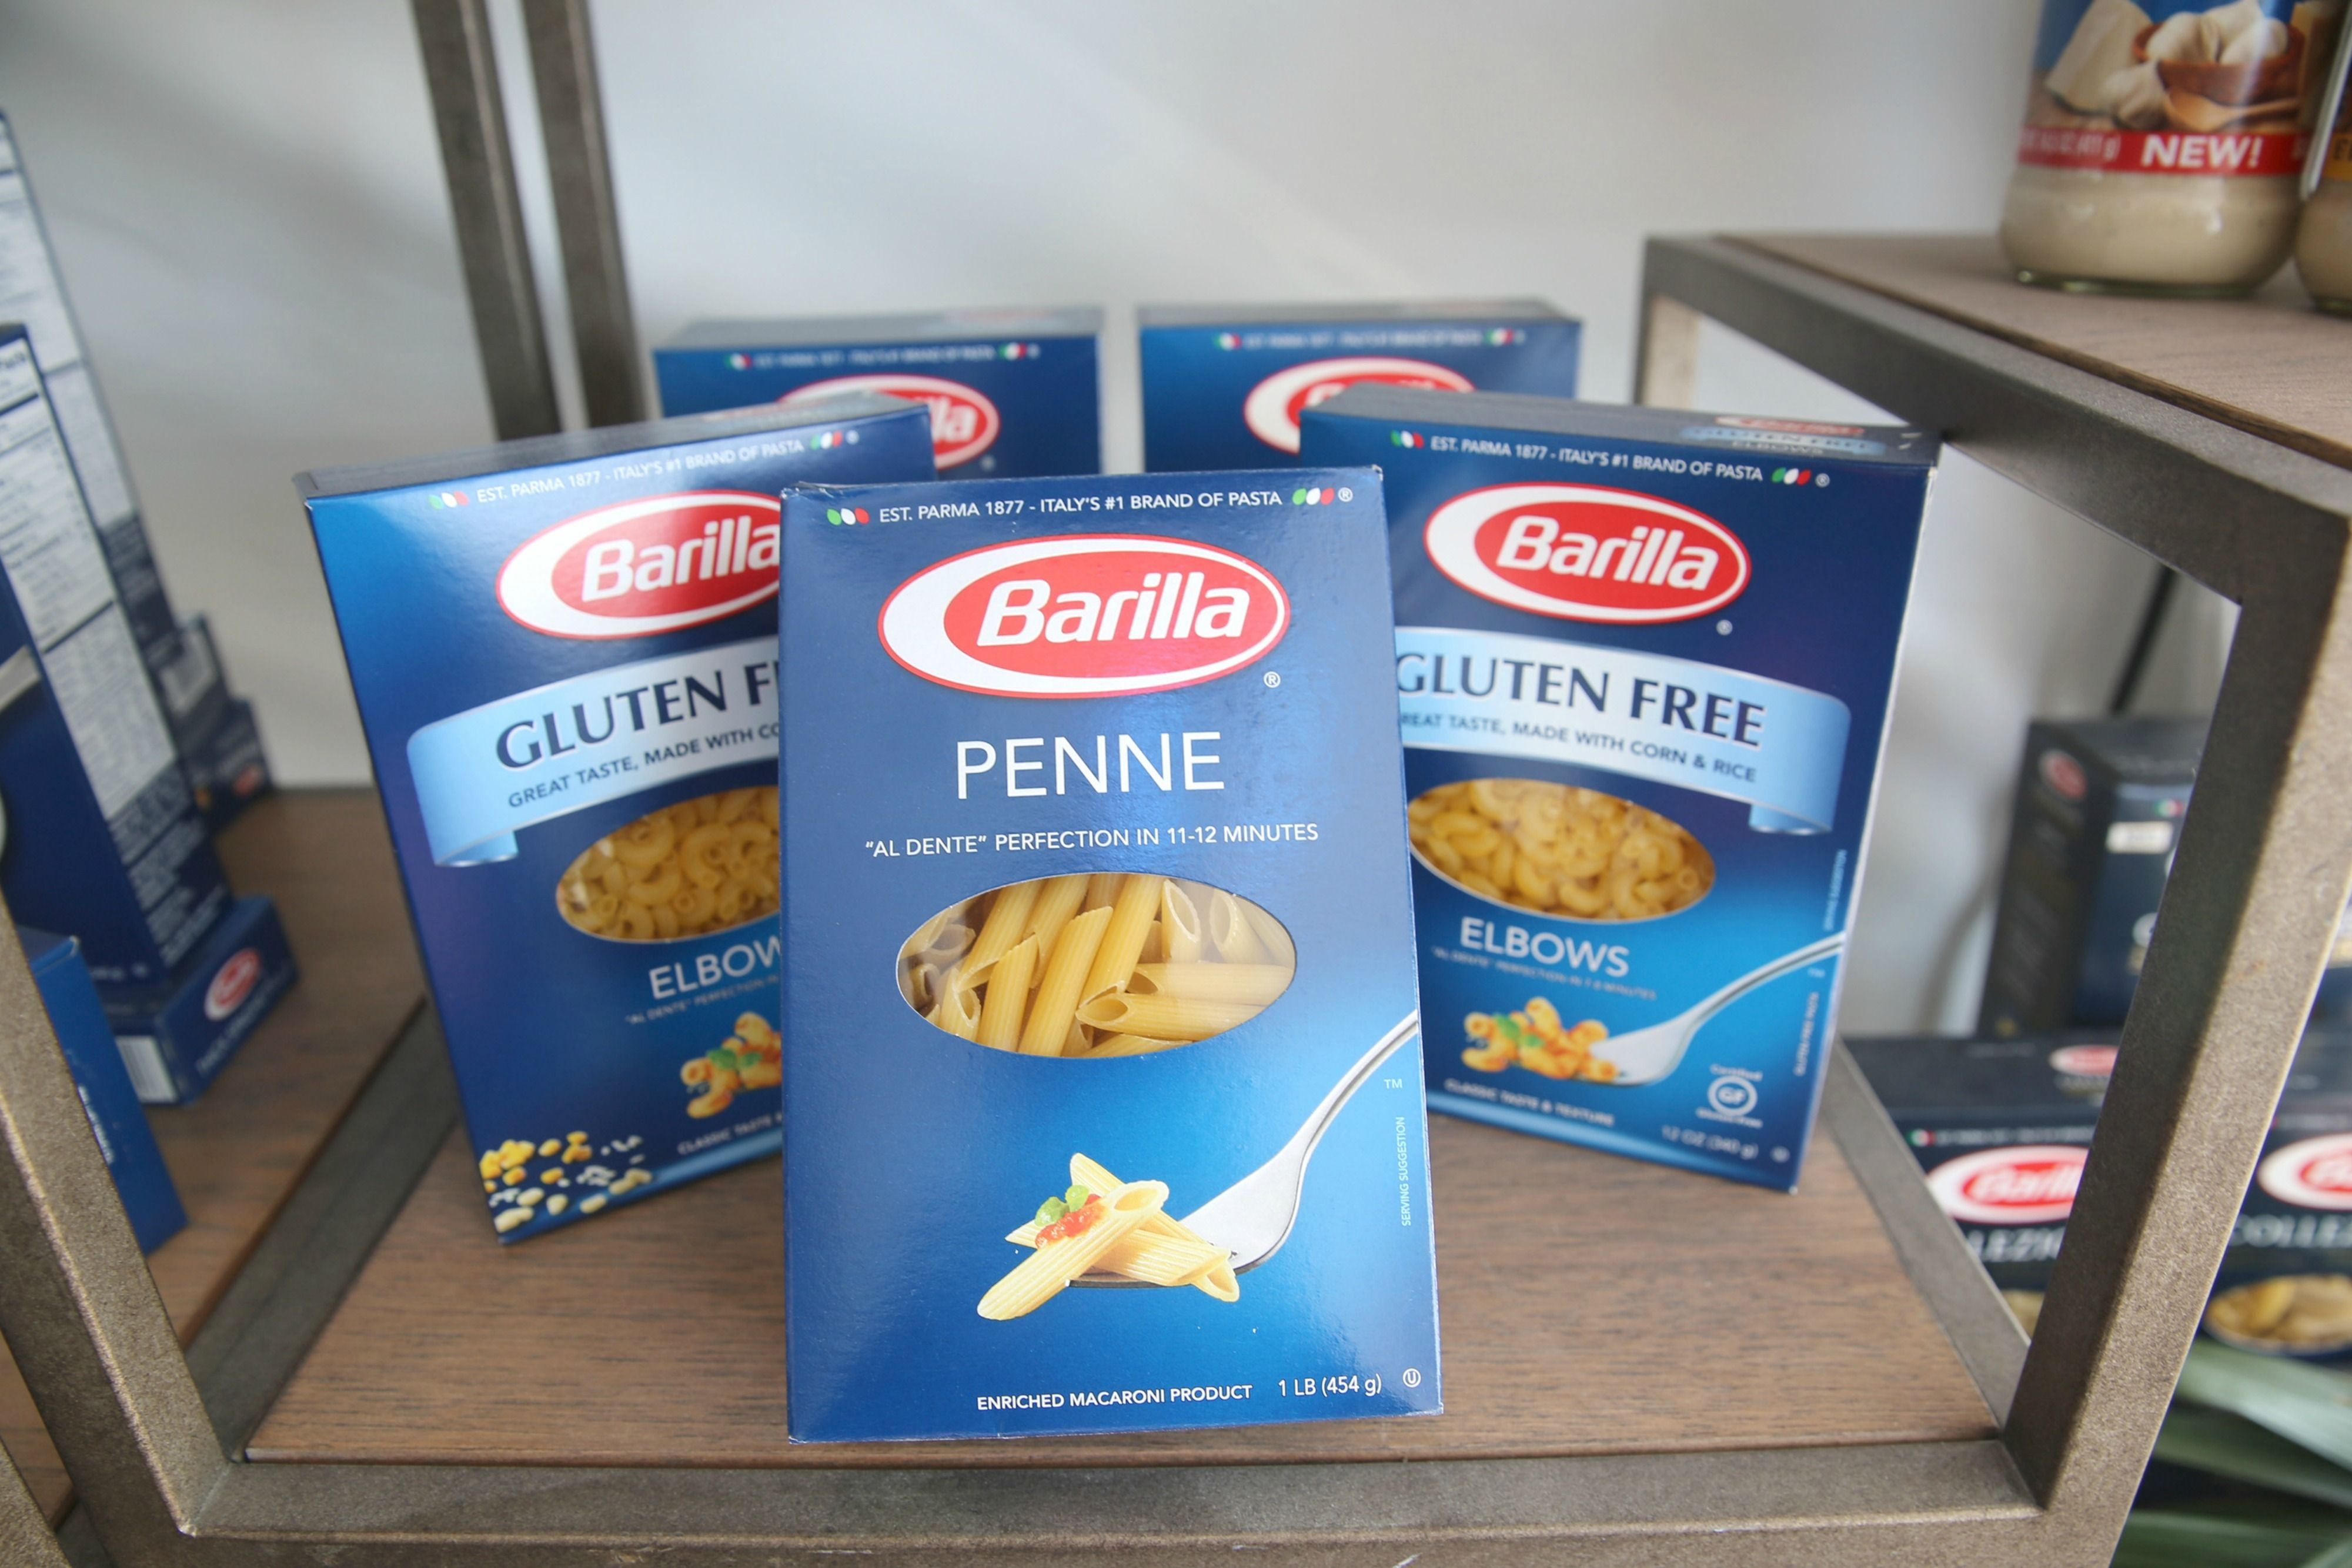 Barilla Is Being Sued For Underfilling Their Pasta Boxes